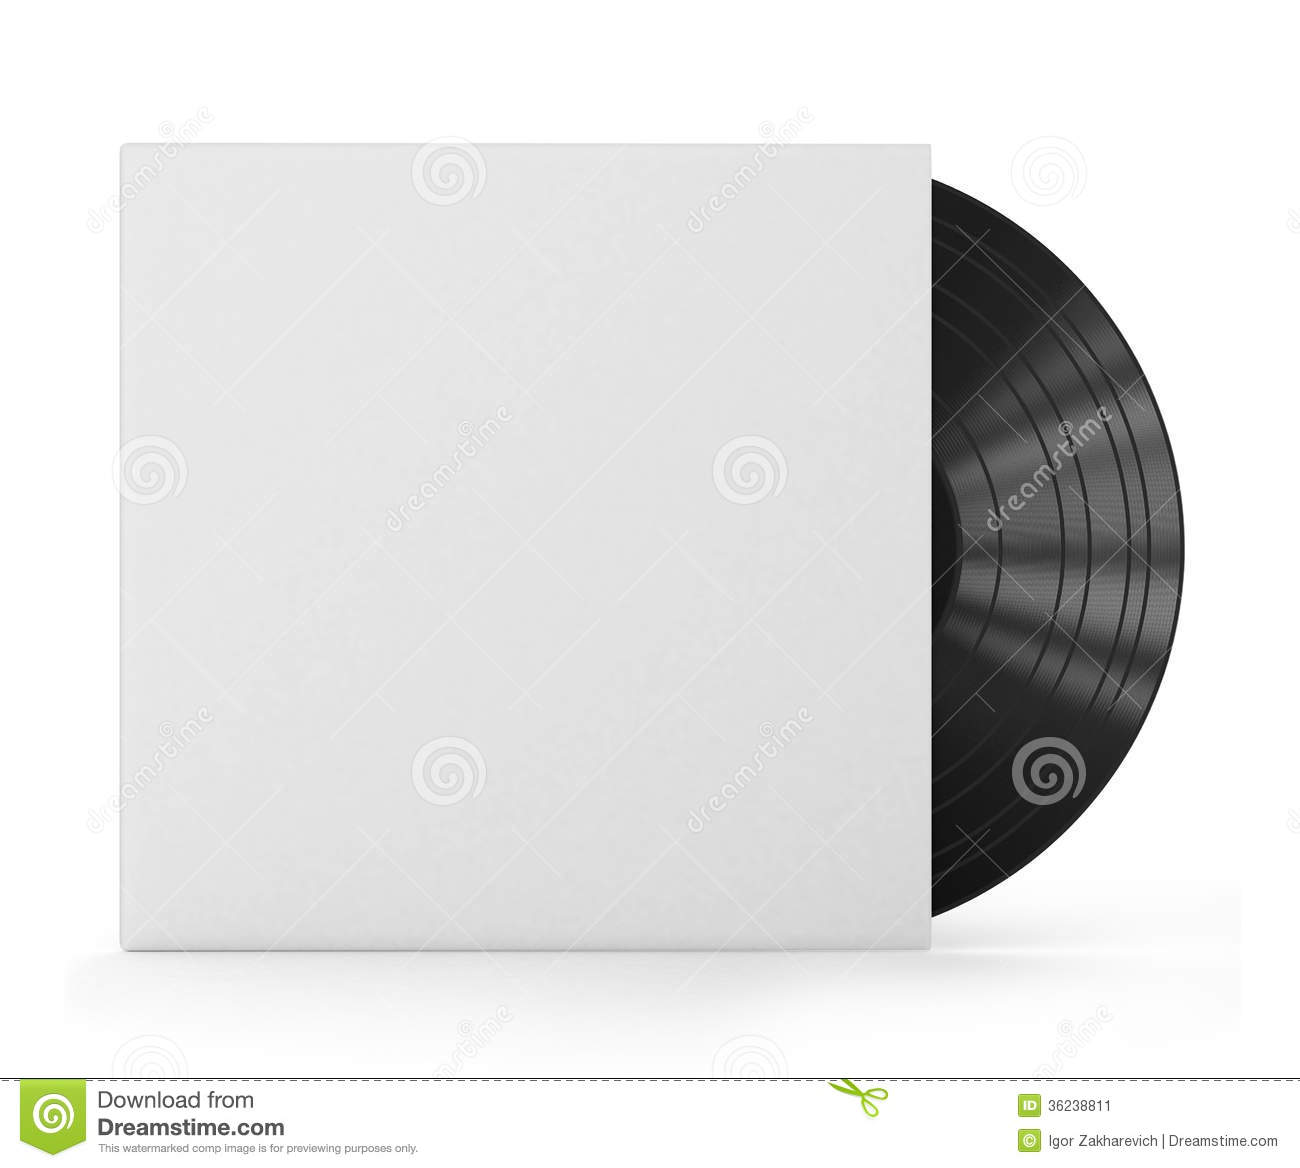 Blank Record Album Cover 47345 MOVDATA 1300x1168